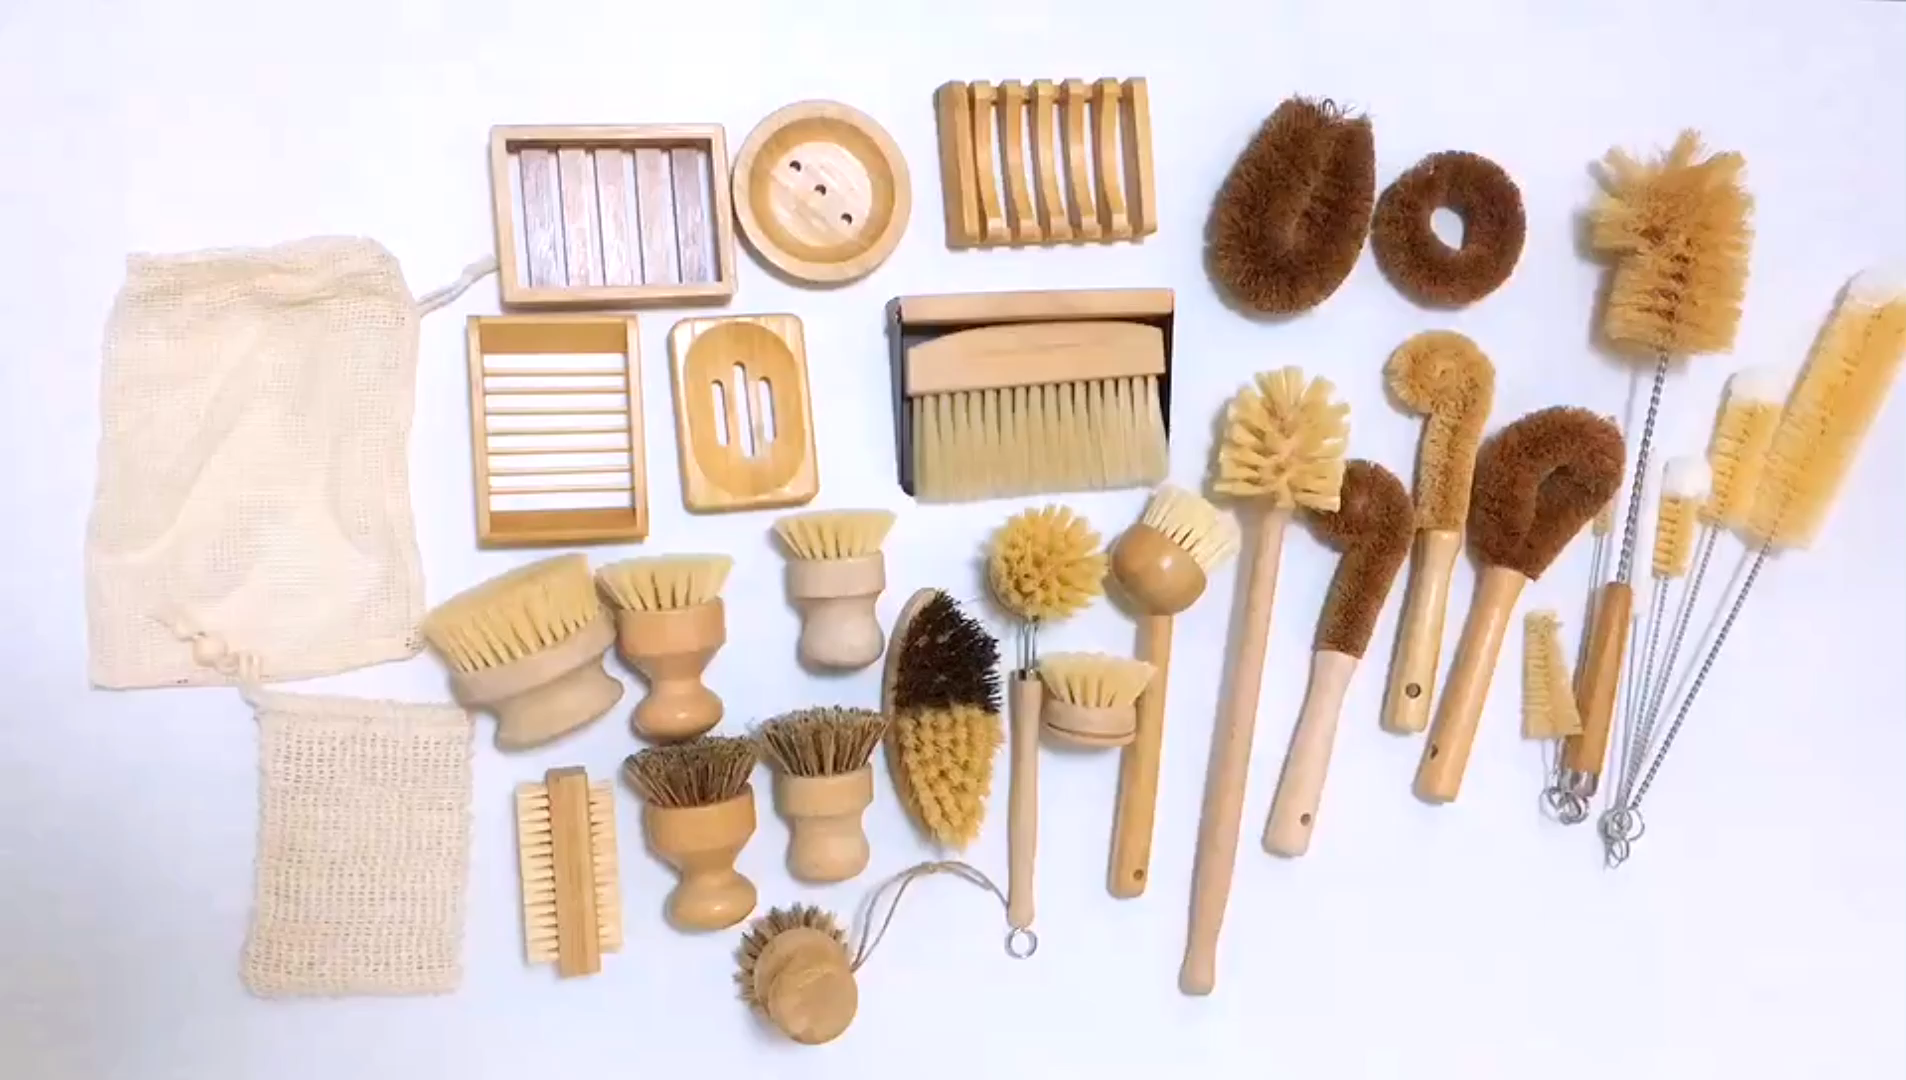 refill brush head kitchen cleaner natural tampico fibre beech wood dish brush palm bowl brushes